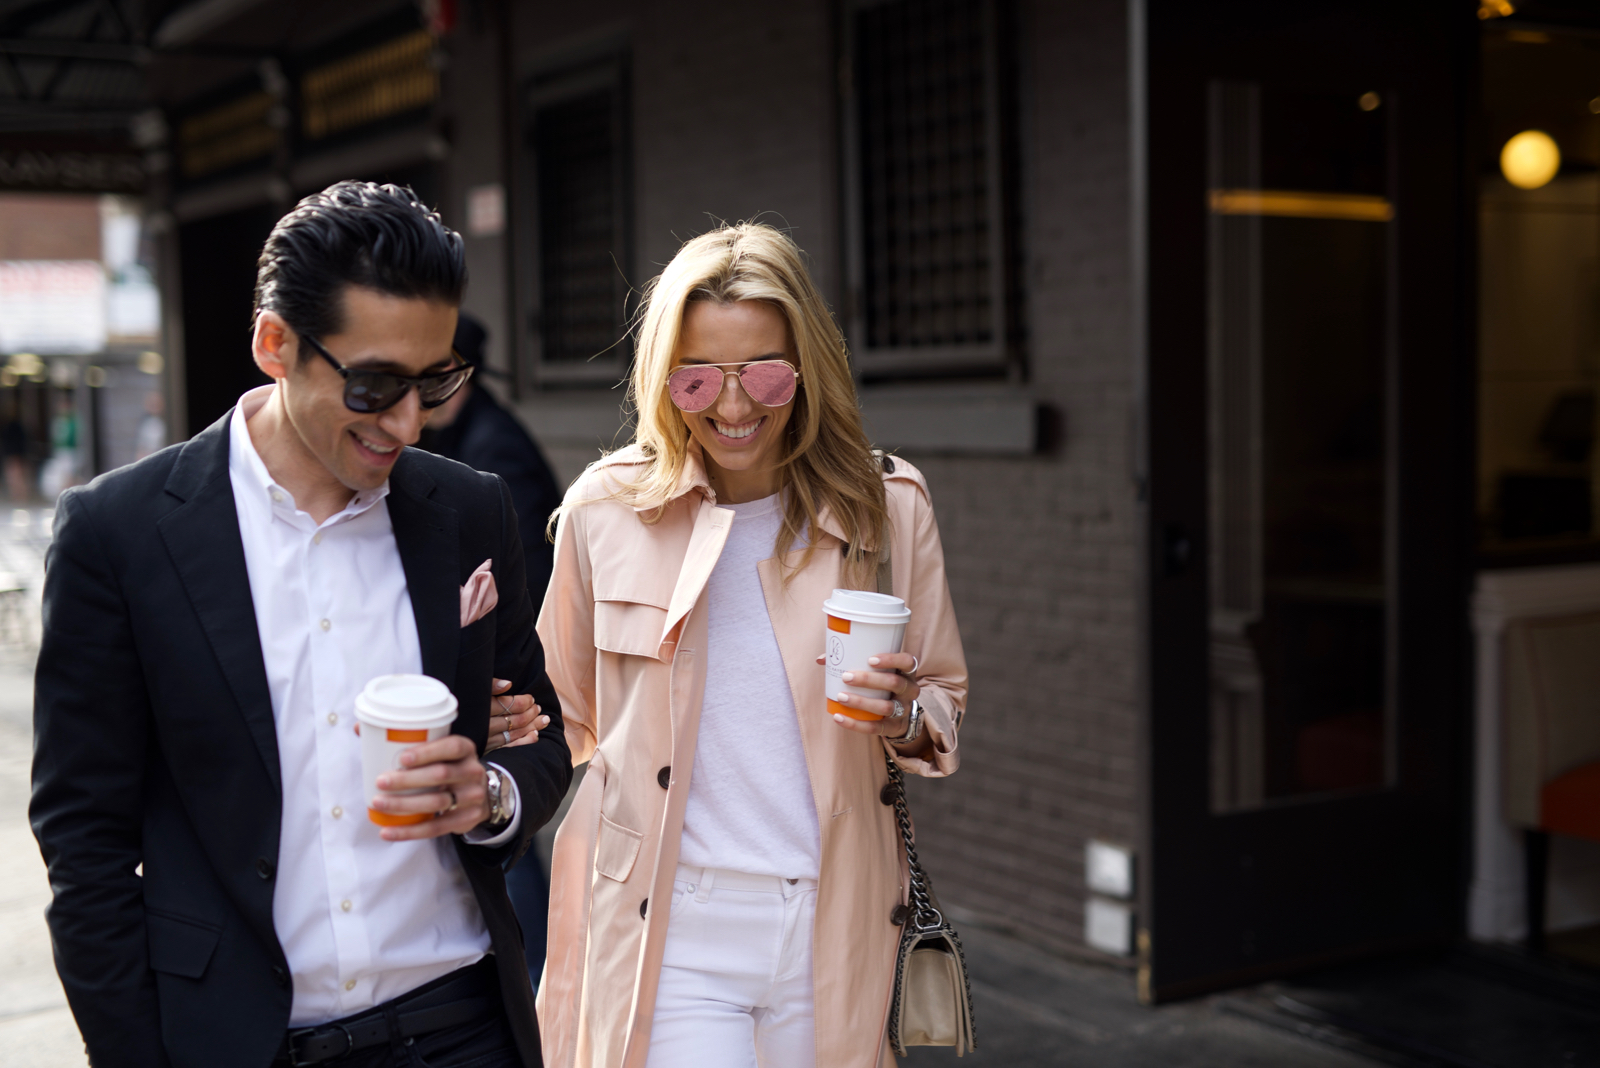 Vince Camuto, PInk Trench, All White, Couple Goals, Couple Fashion